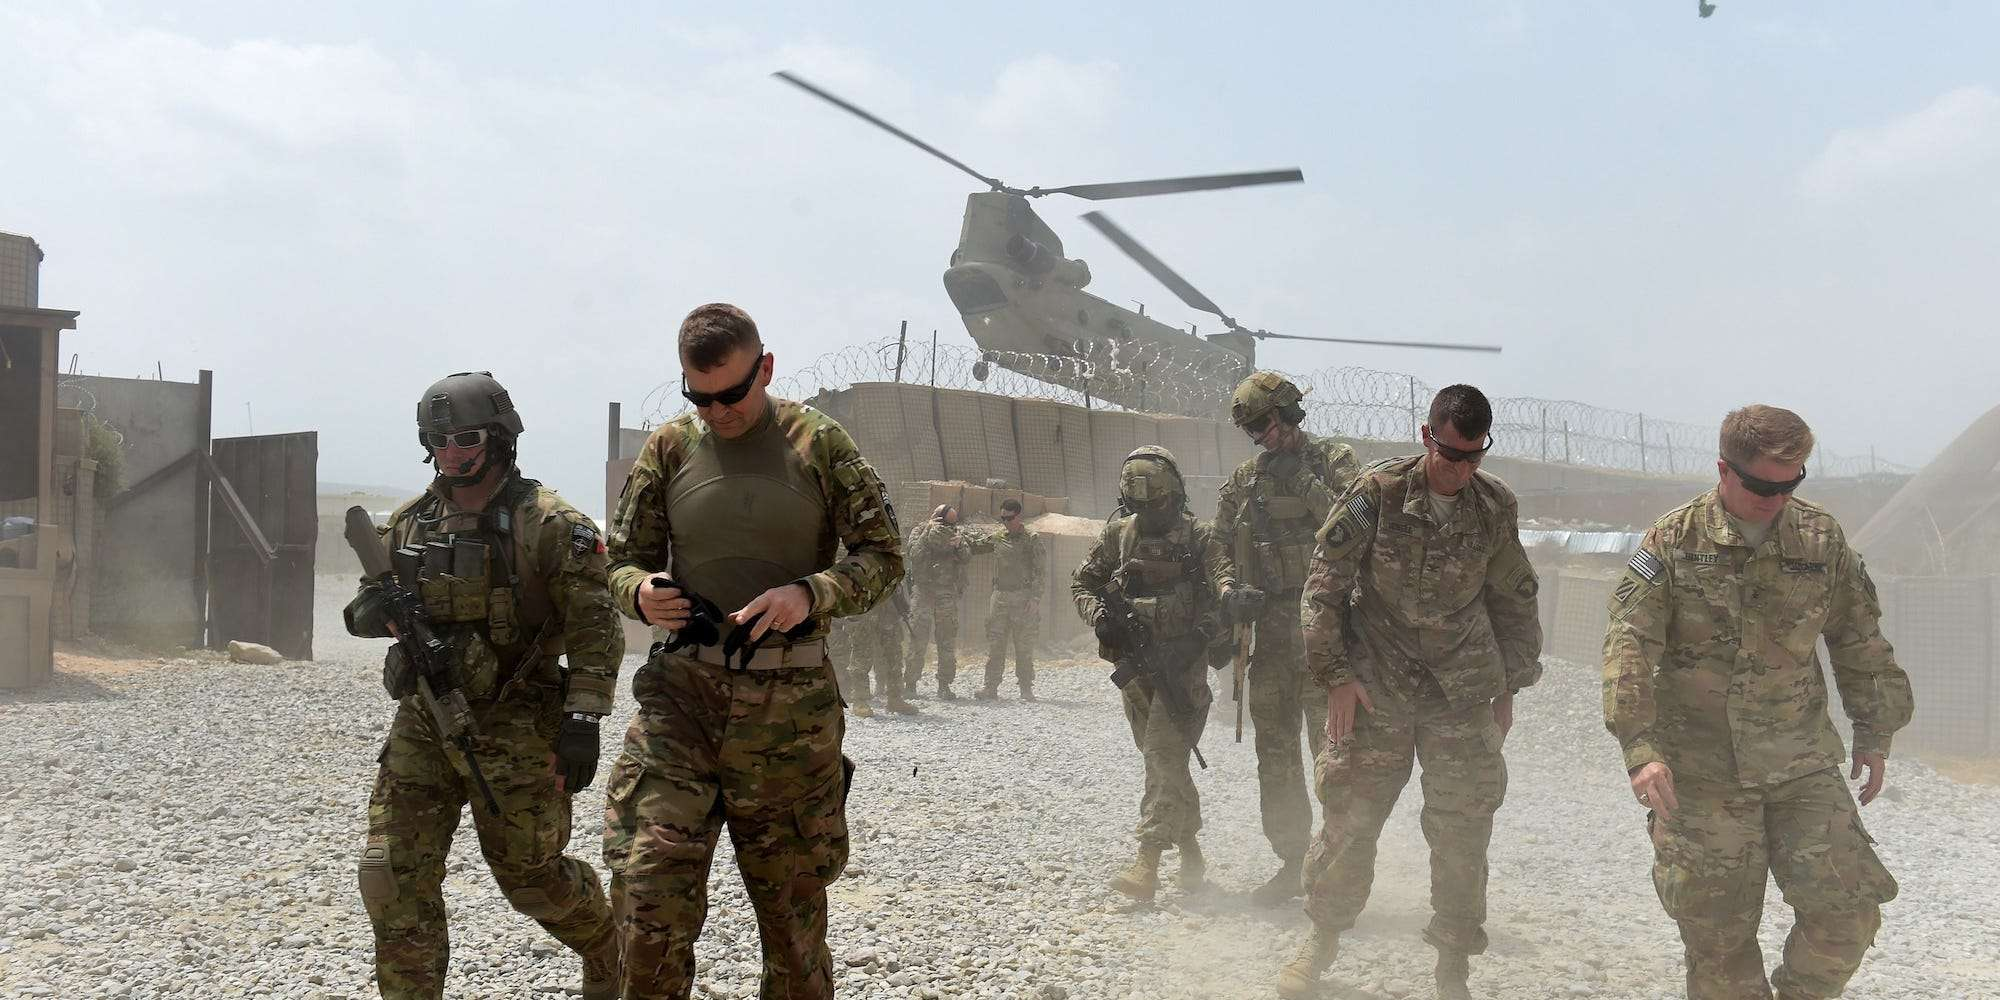 NATO is likely to join the US in withdrawing troops from Afghanistan in  September, German defense minister says | Business Insider India